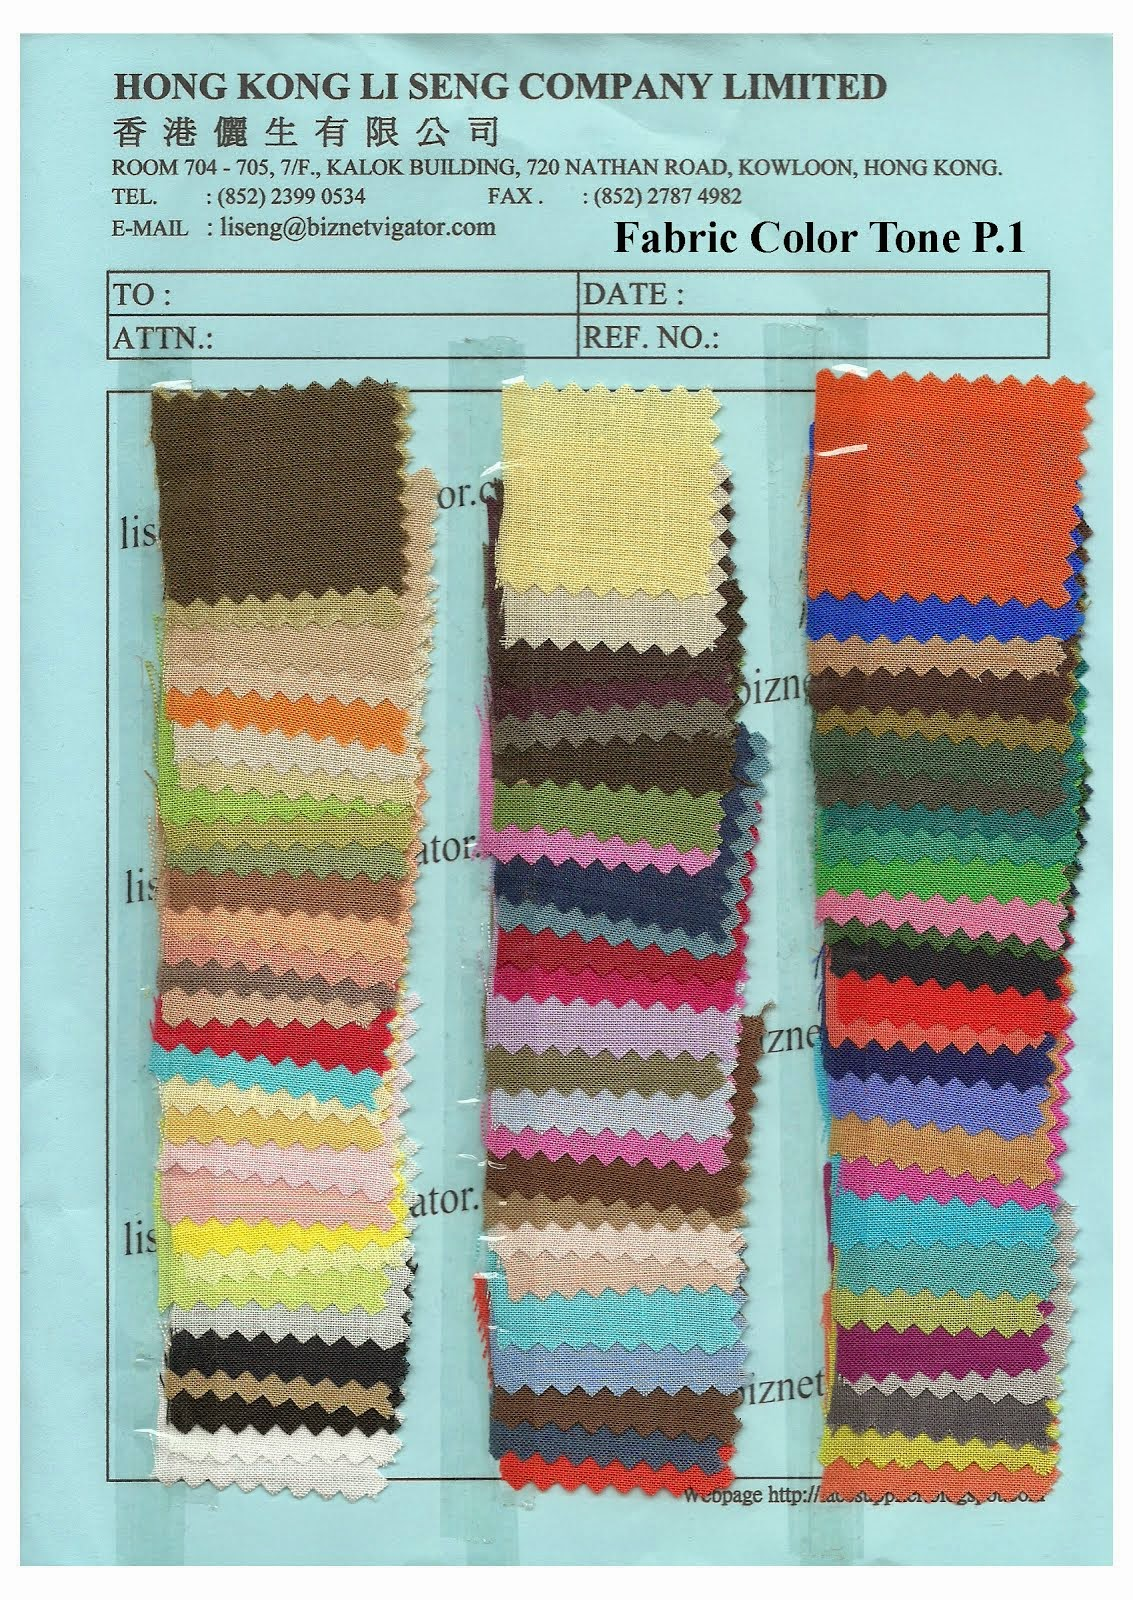 Fabric Color Tone P.1 - Hong Kong Li Seng Co Ltd